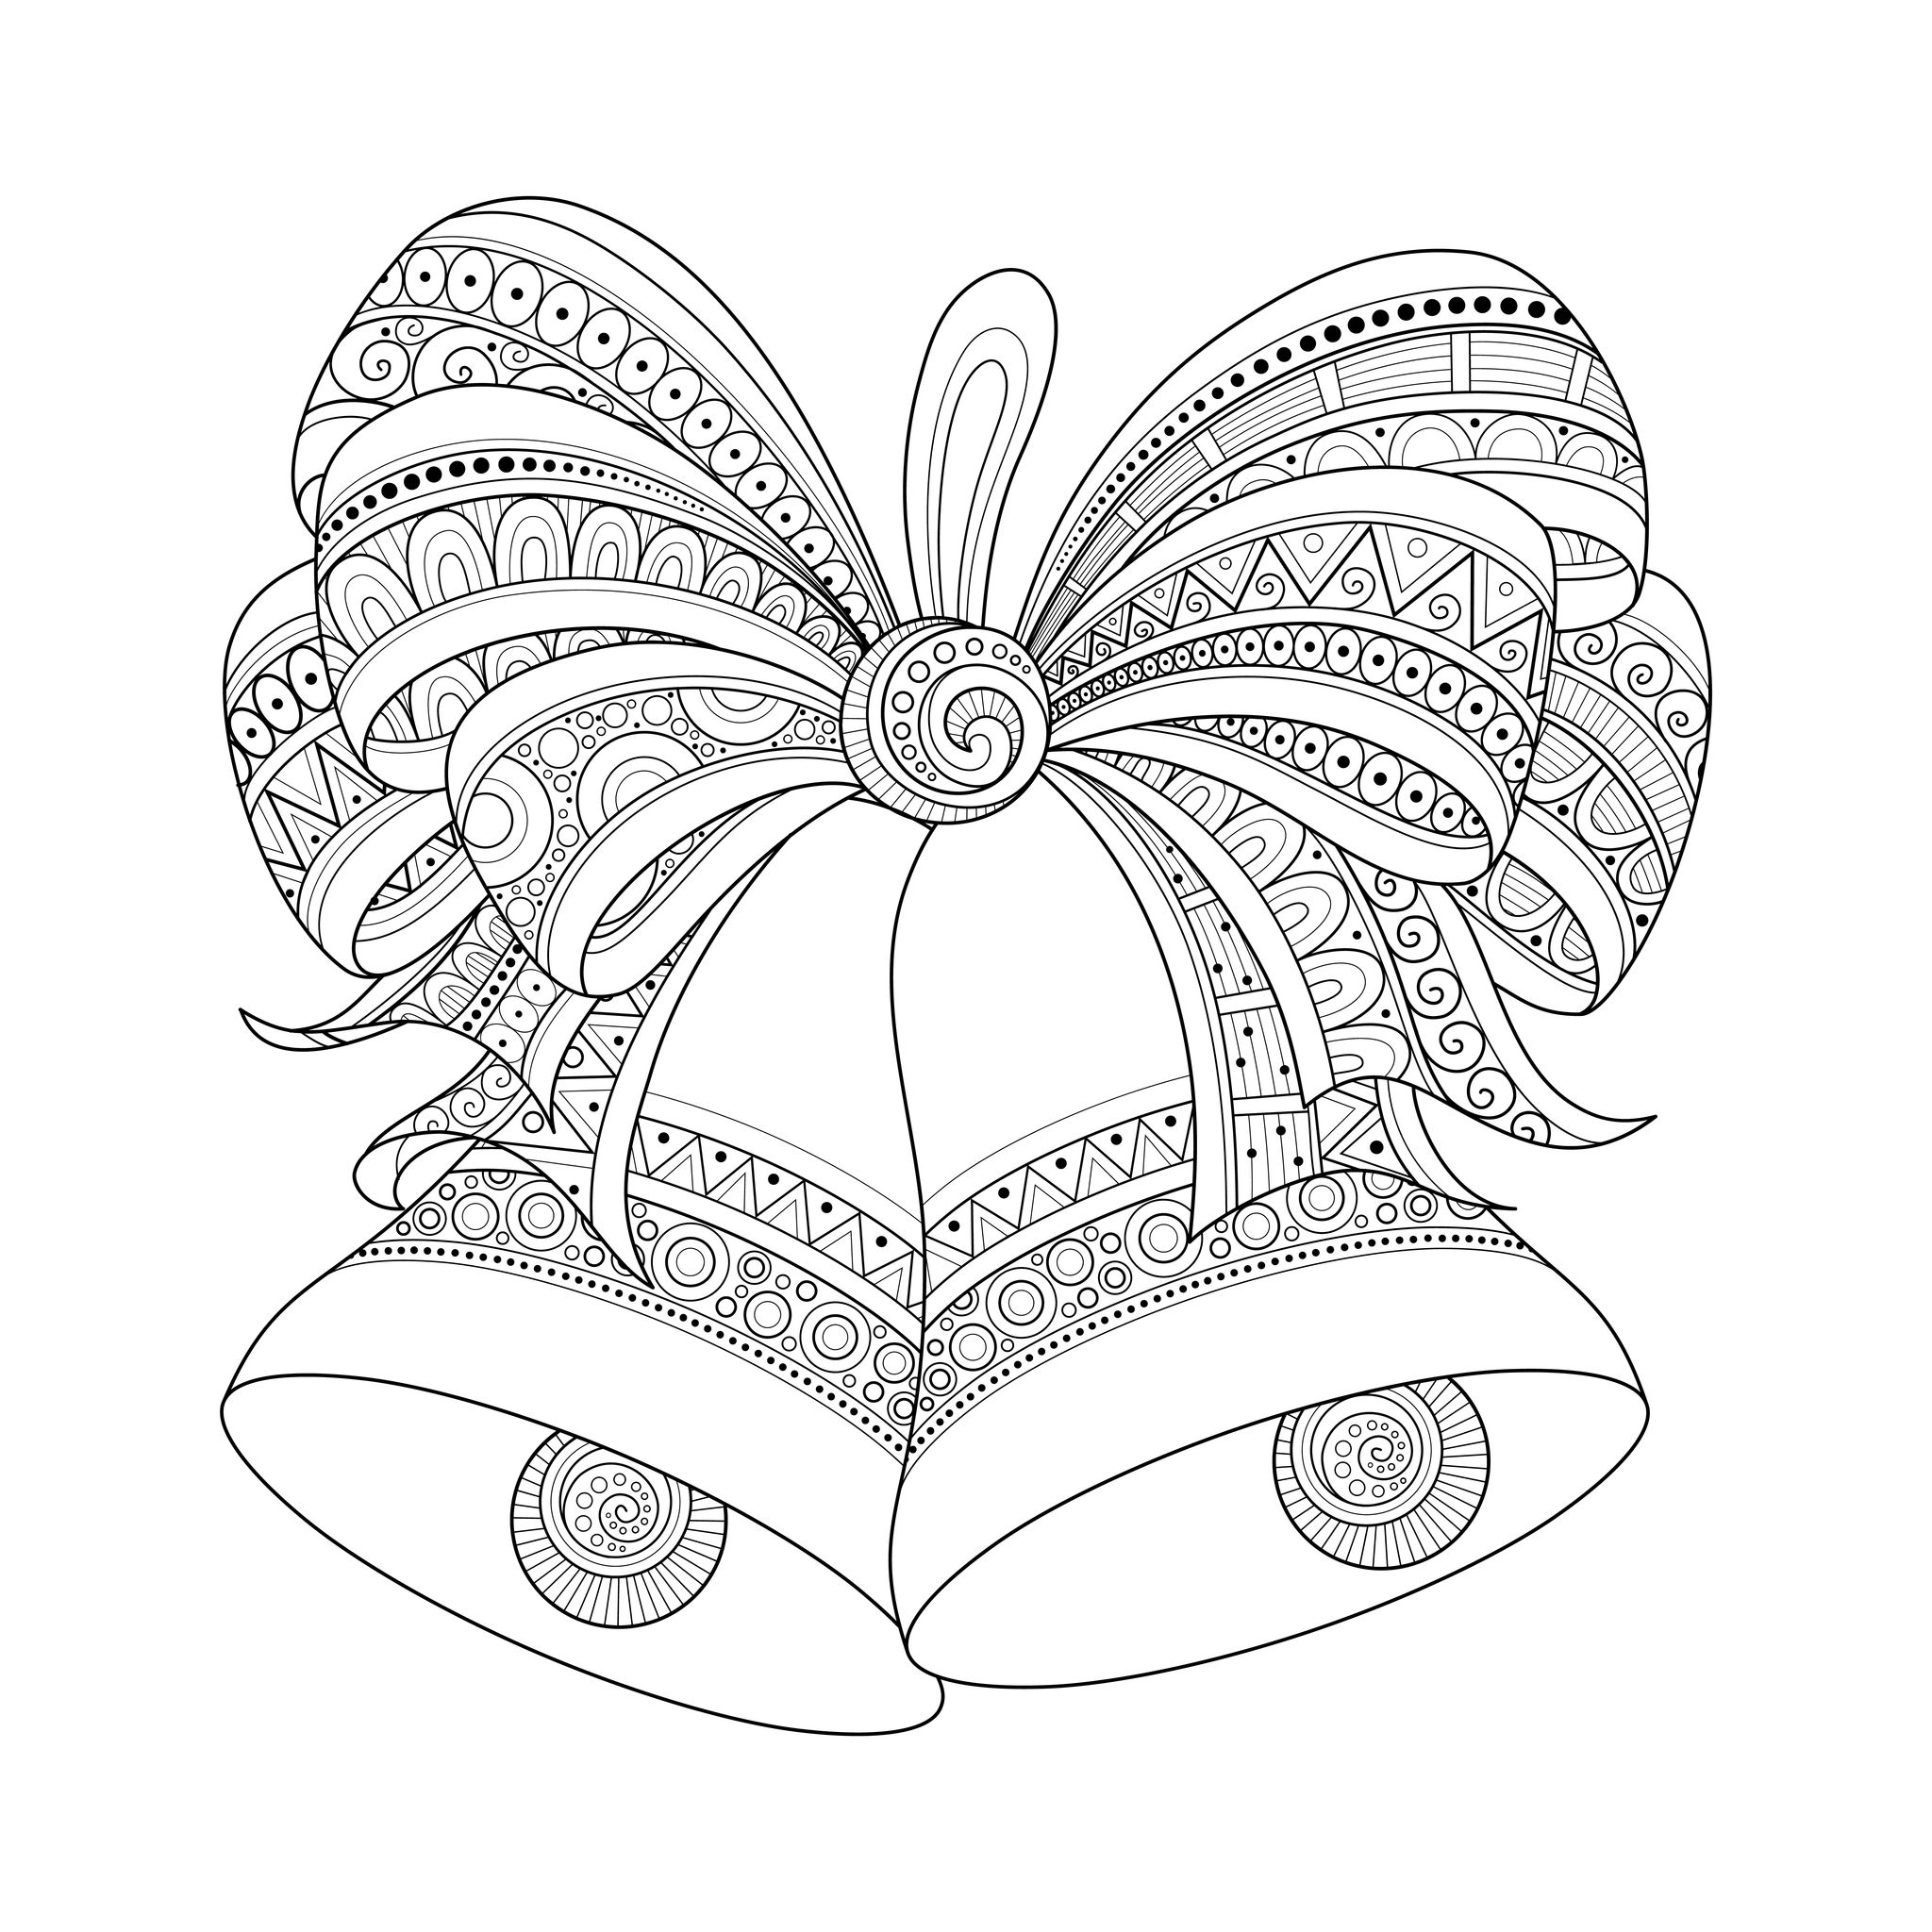 christmas golden bells with bow drawn with zentangle style from the gallery events - Christmas Coloring Pages For Adults